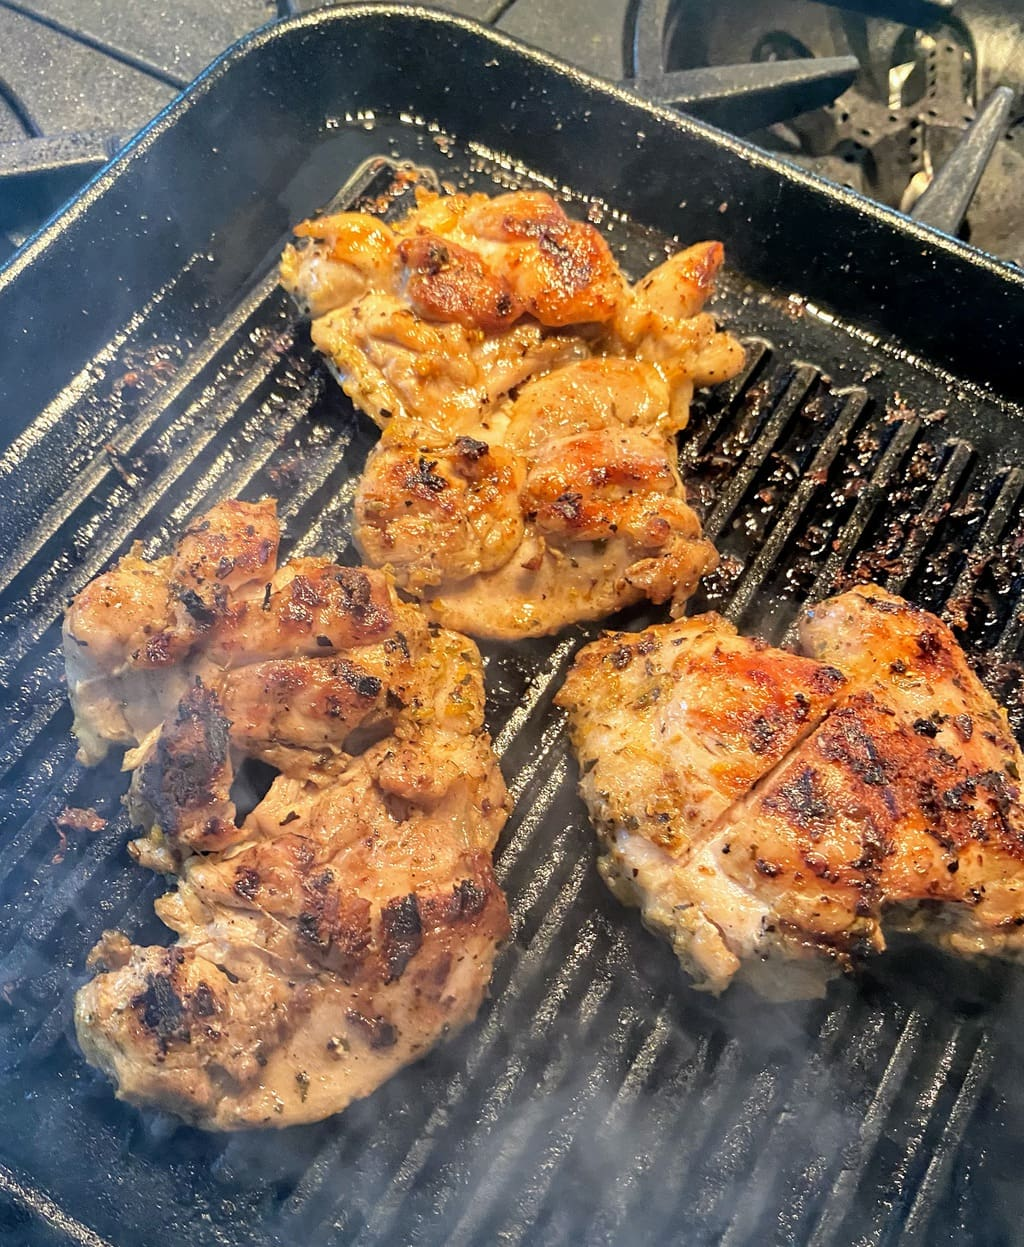 Grill pan with chicken for panzanella salad